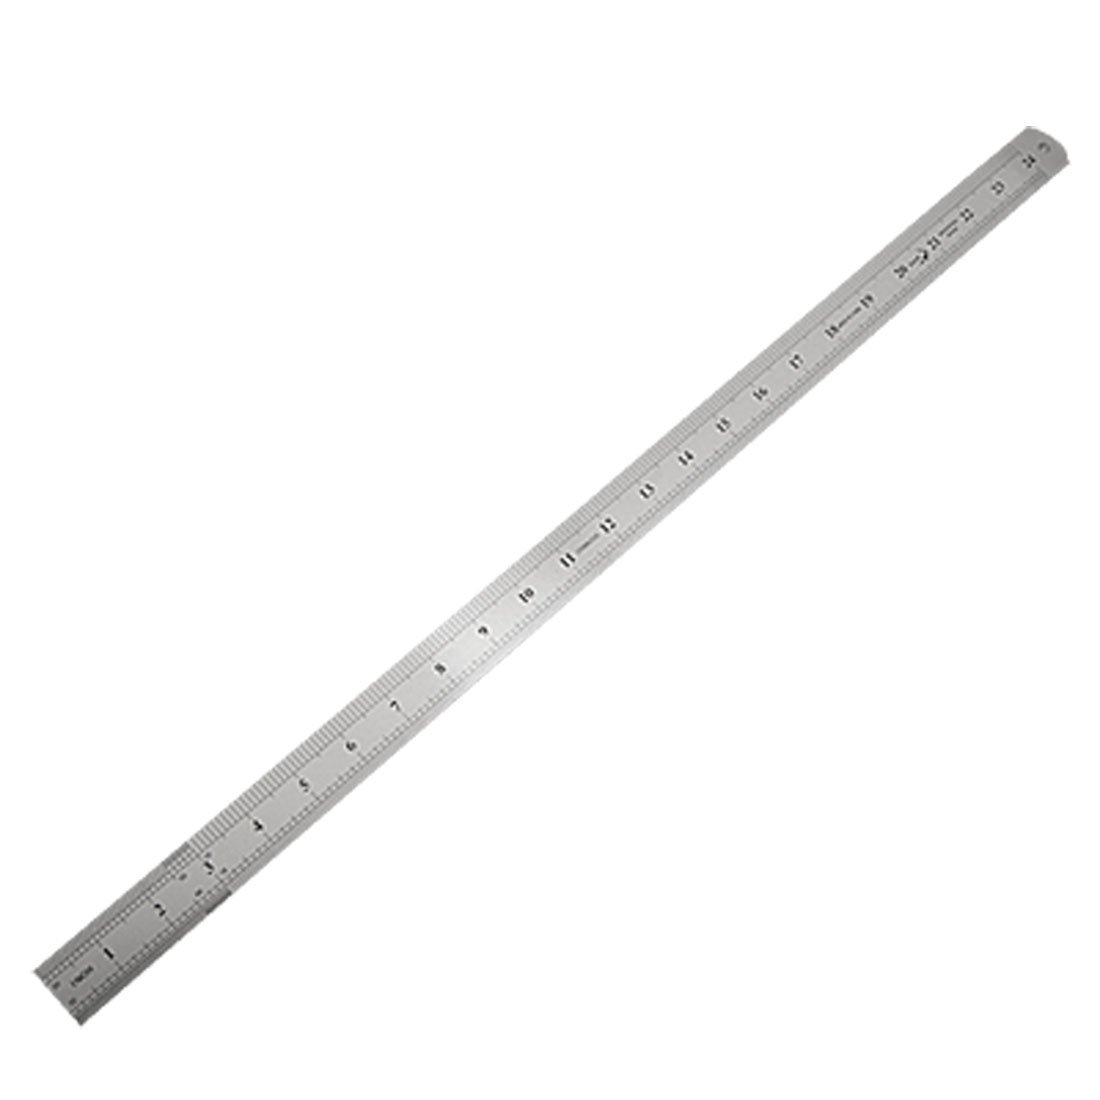 SOSW-Stainless Steel 60cm 24.6 Inch Measuring Long Straight Ruler